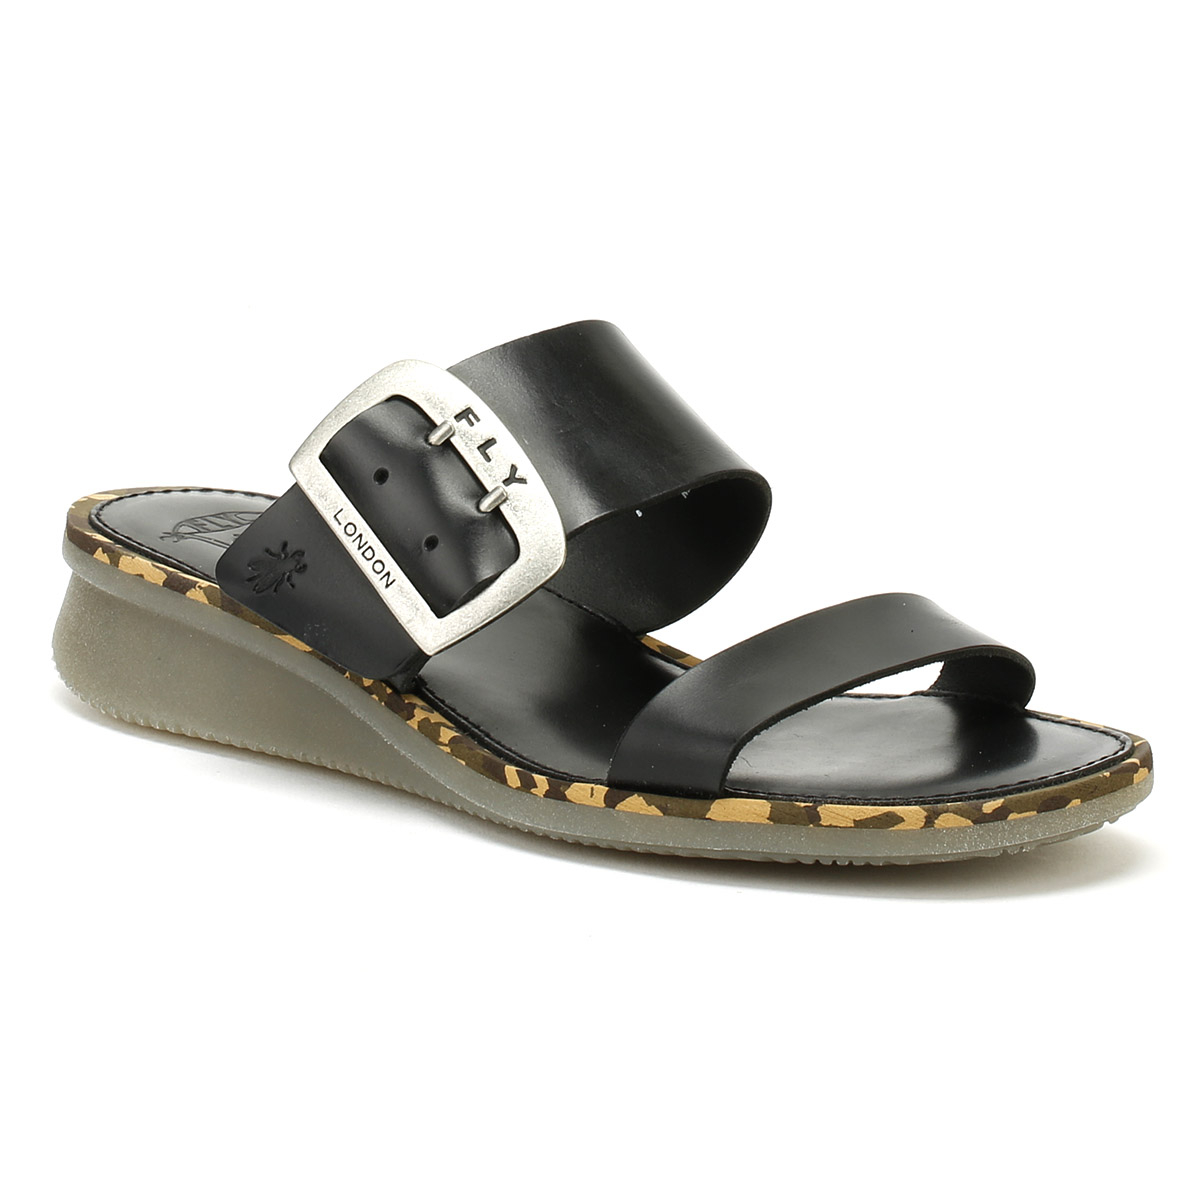 Fly-London-Womens-Sandals-Black-Cape205fly-Bridle-Wedge-Summer-Leather-Shoes